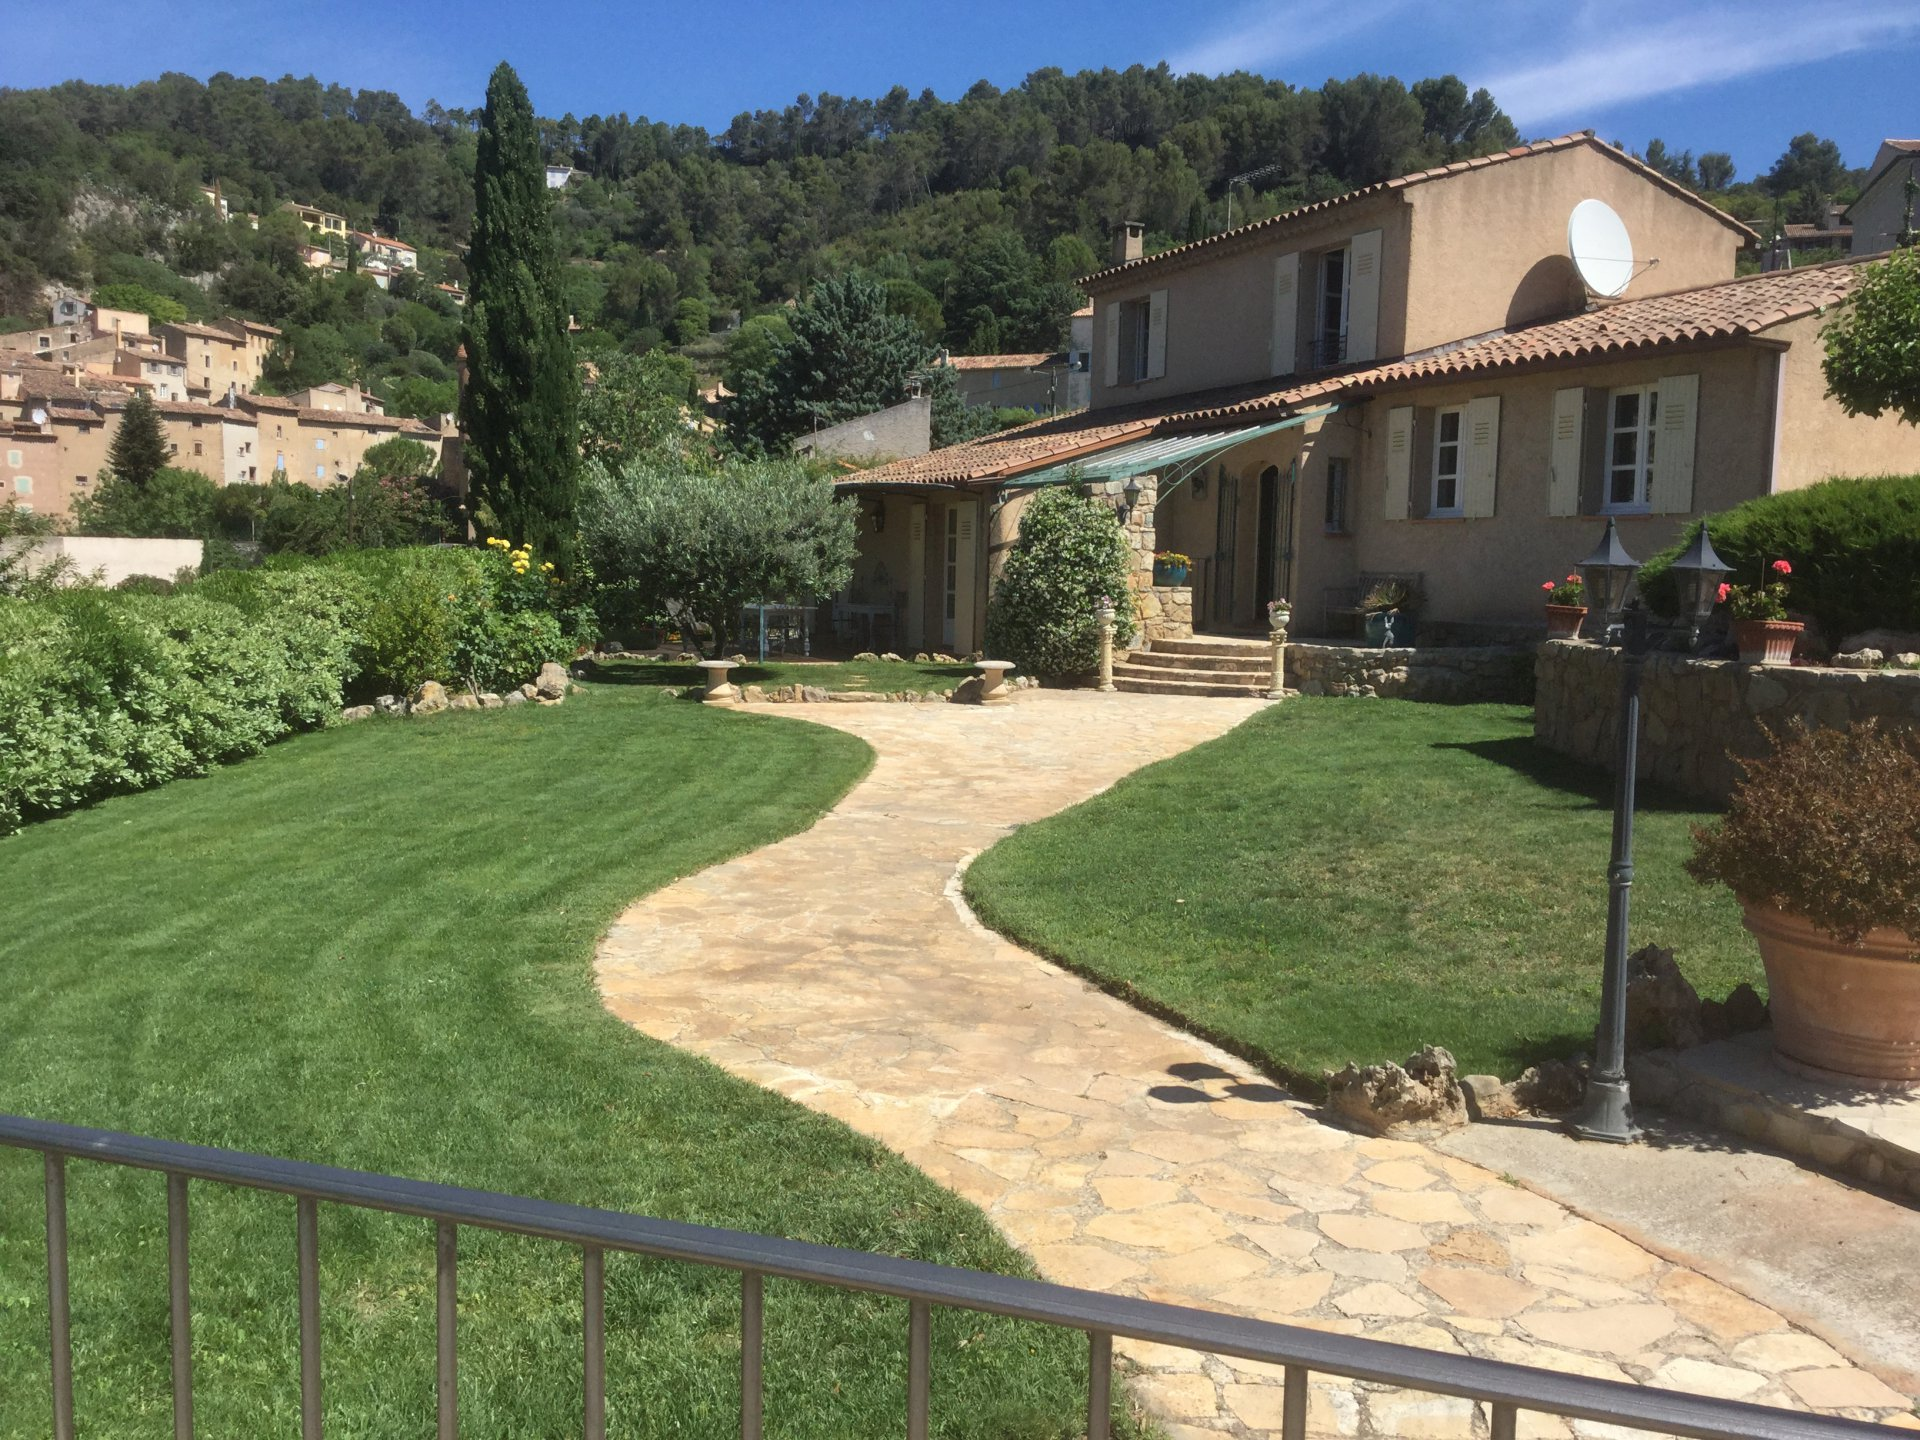 3 bedroom house in the village, Cotignac, pool, garage and guesthouse.